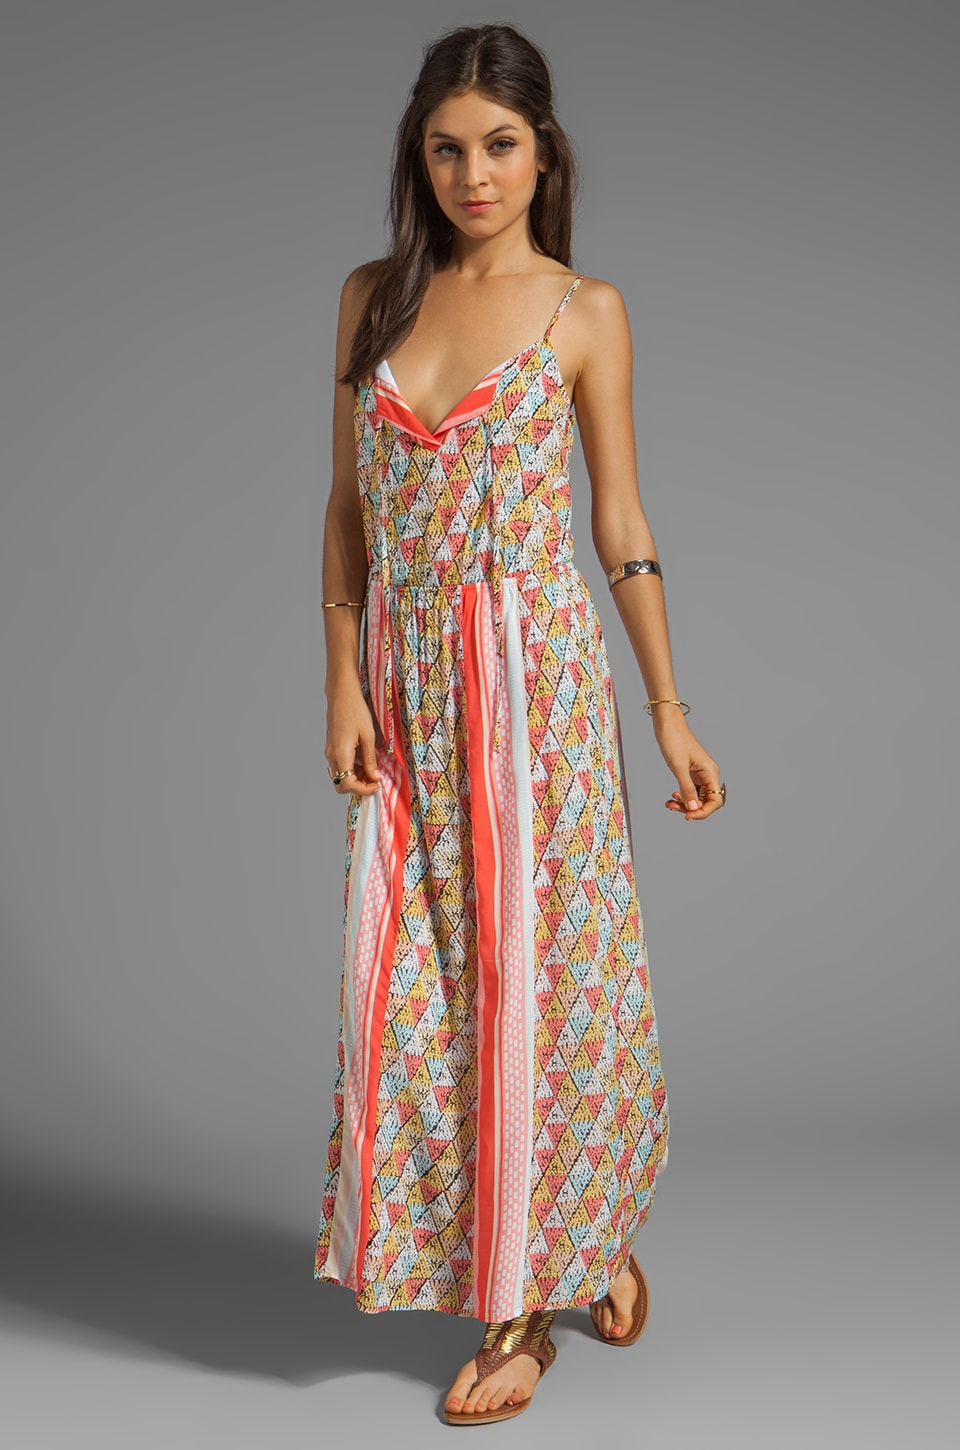 Ella Moss Tiki Maxi Dress in Coral